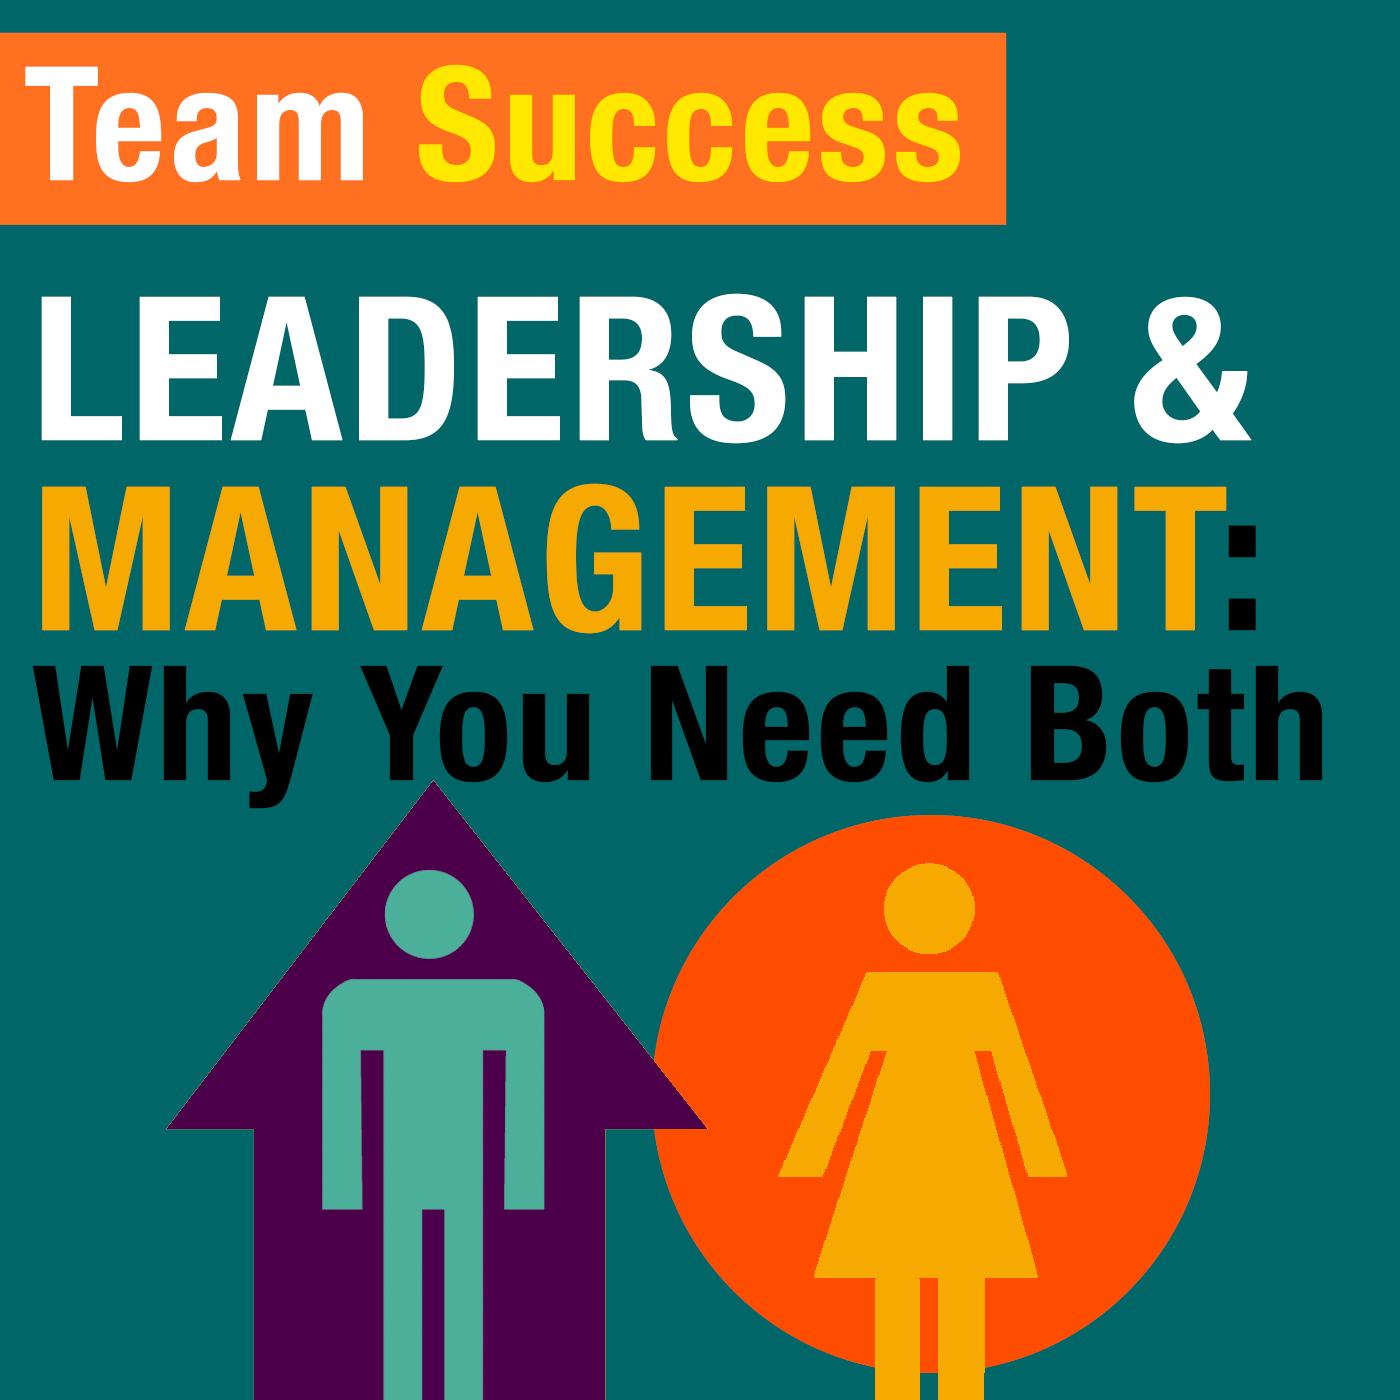 Leadership & Management: Why You Need Both - Team Success Podcast